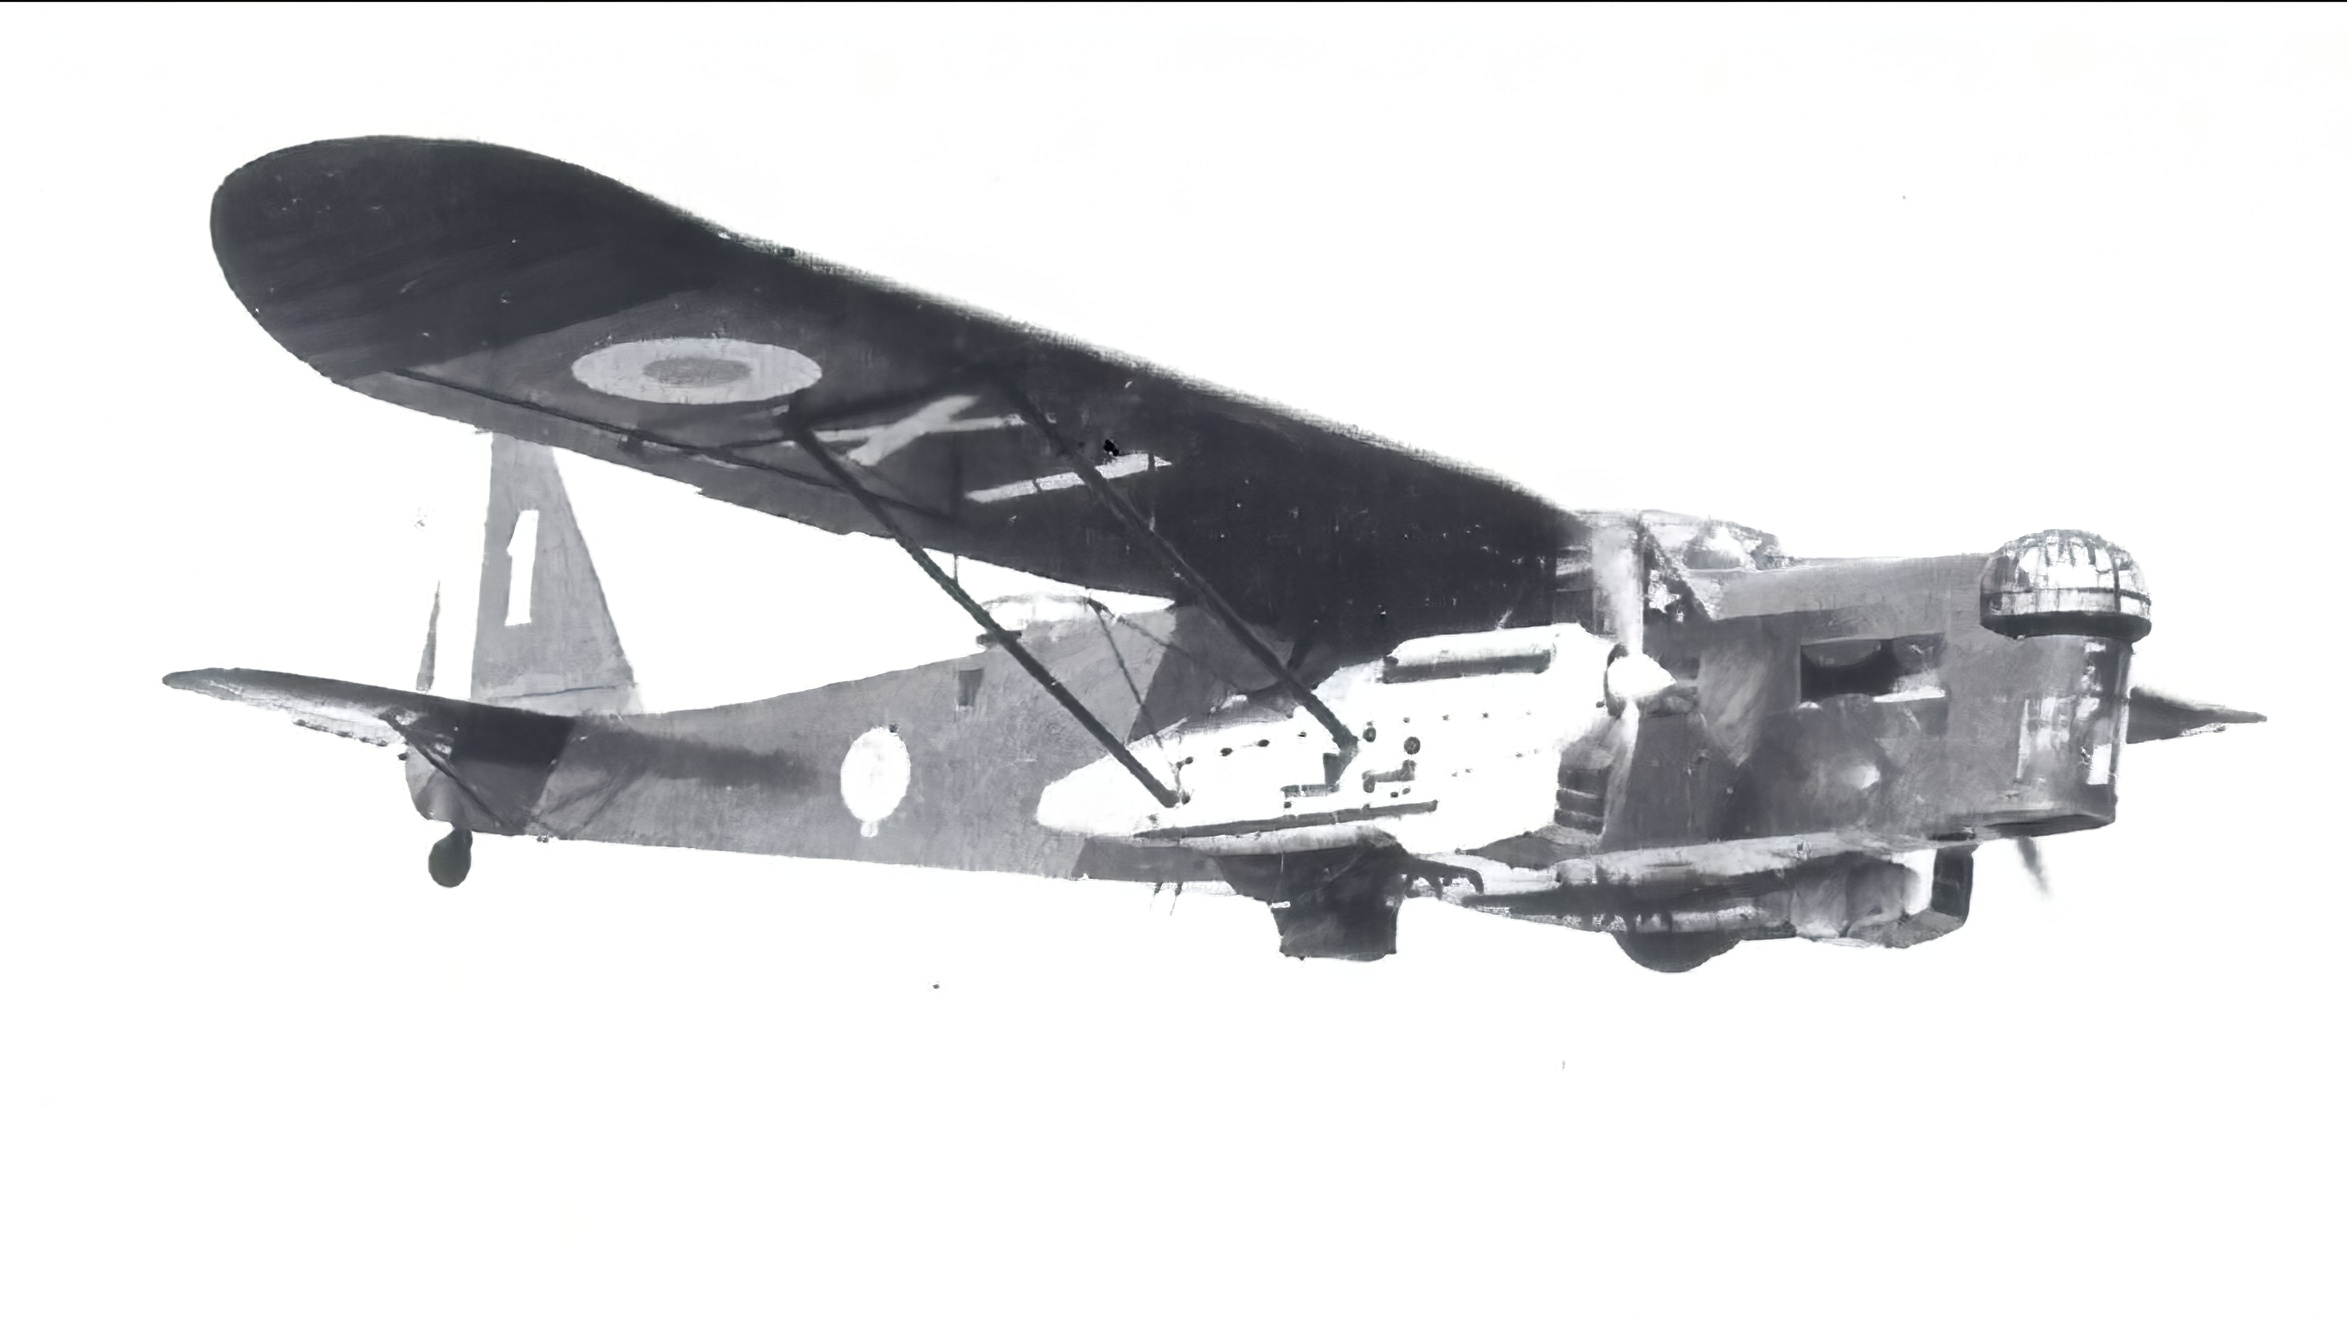 French Airforce Potez 540 White 1 airborne over France ebay 01